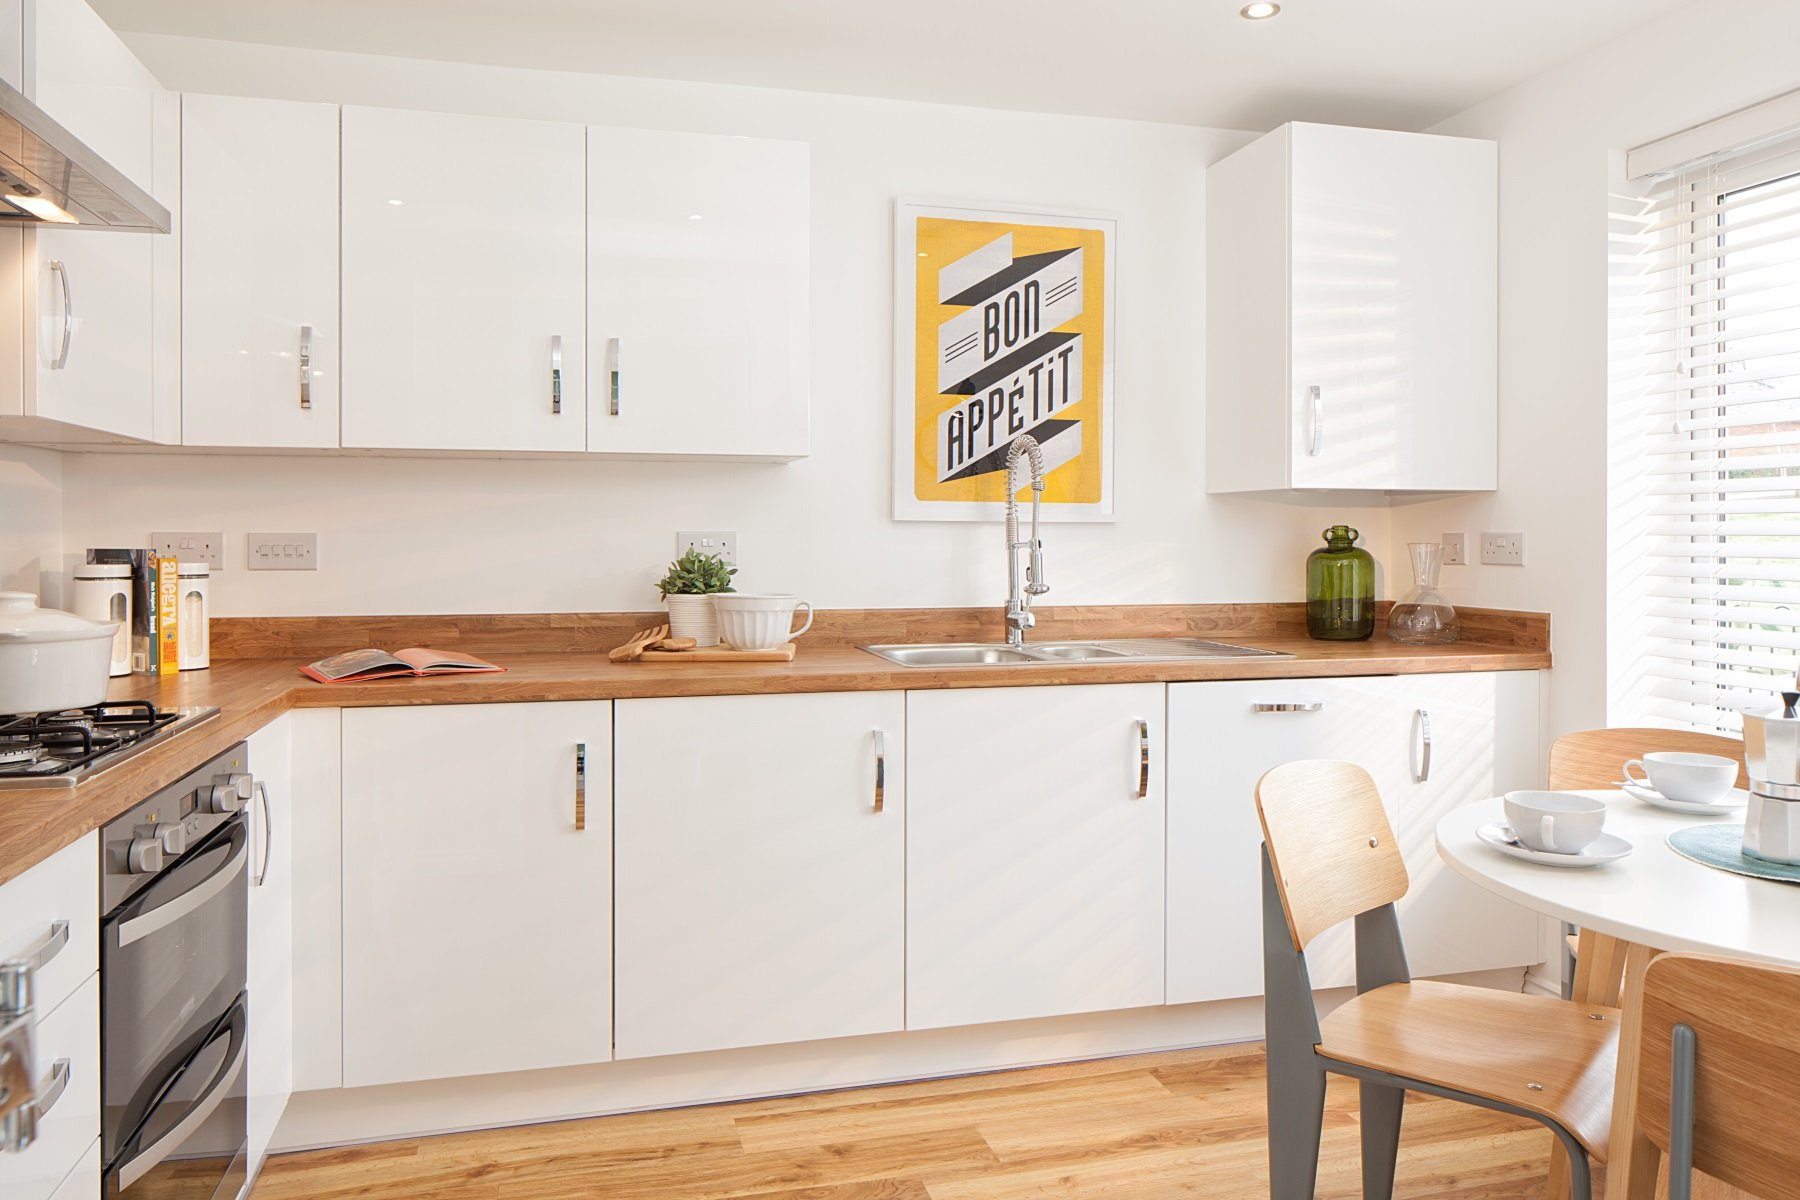 TW Exeter - Buckingham Heights - Flatford example kitchen 2